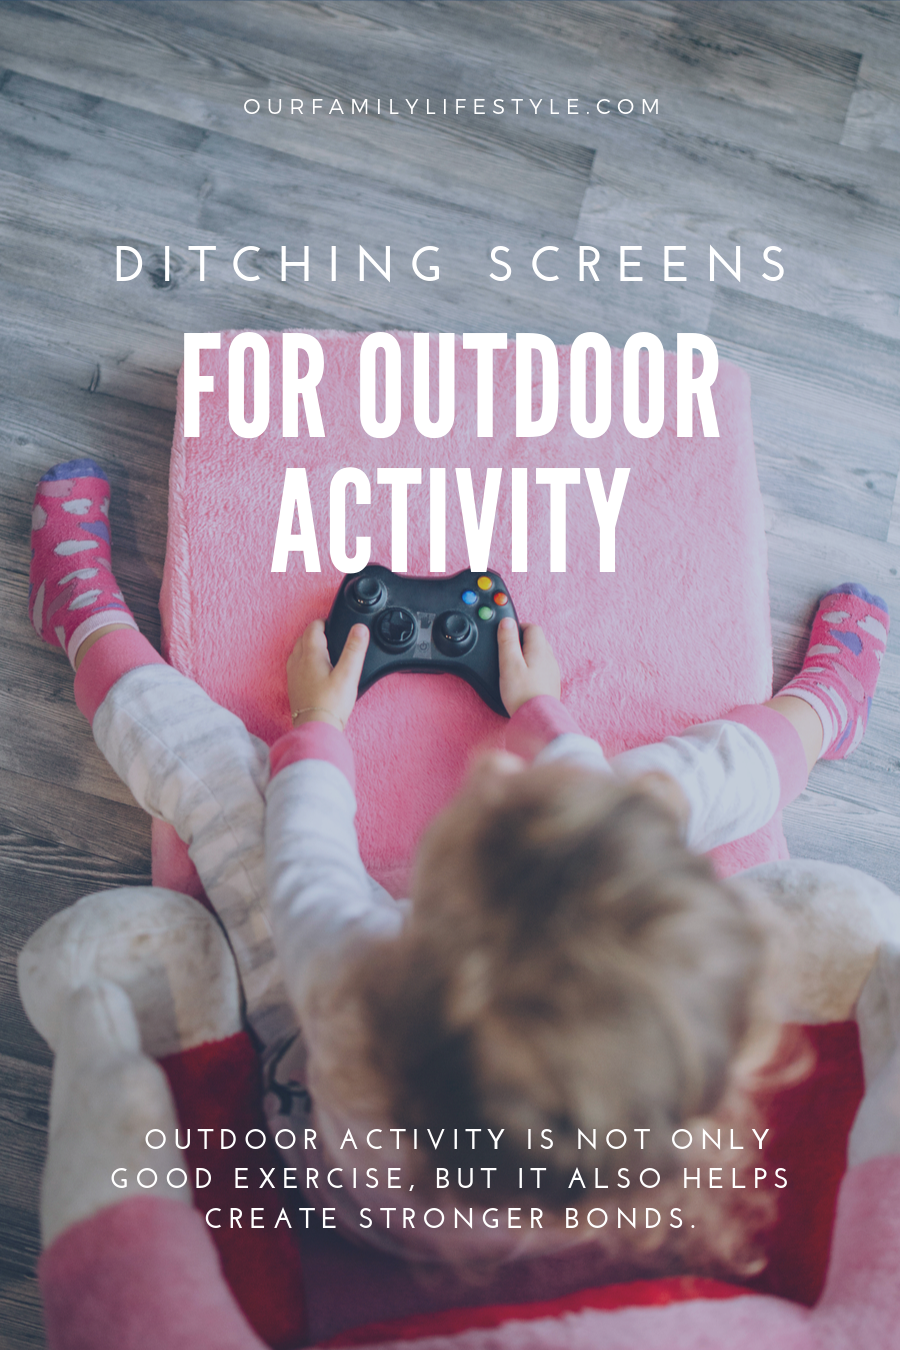 Ditching the Screens For Some Outdoor Activity